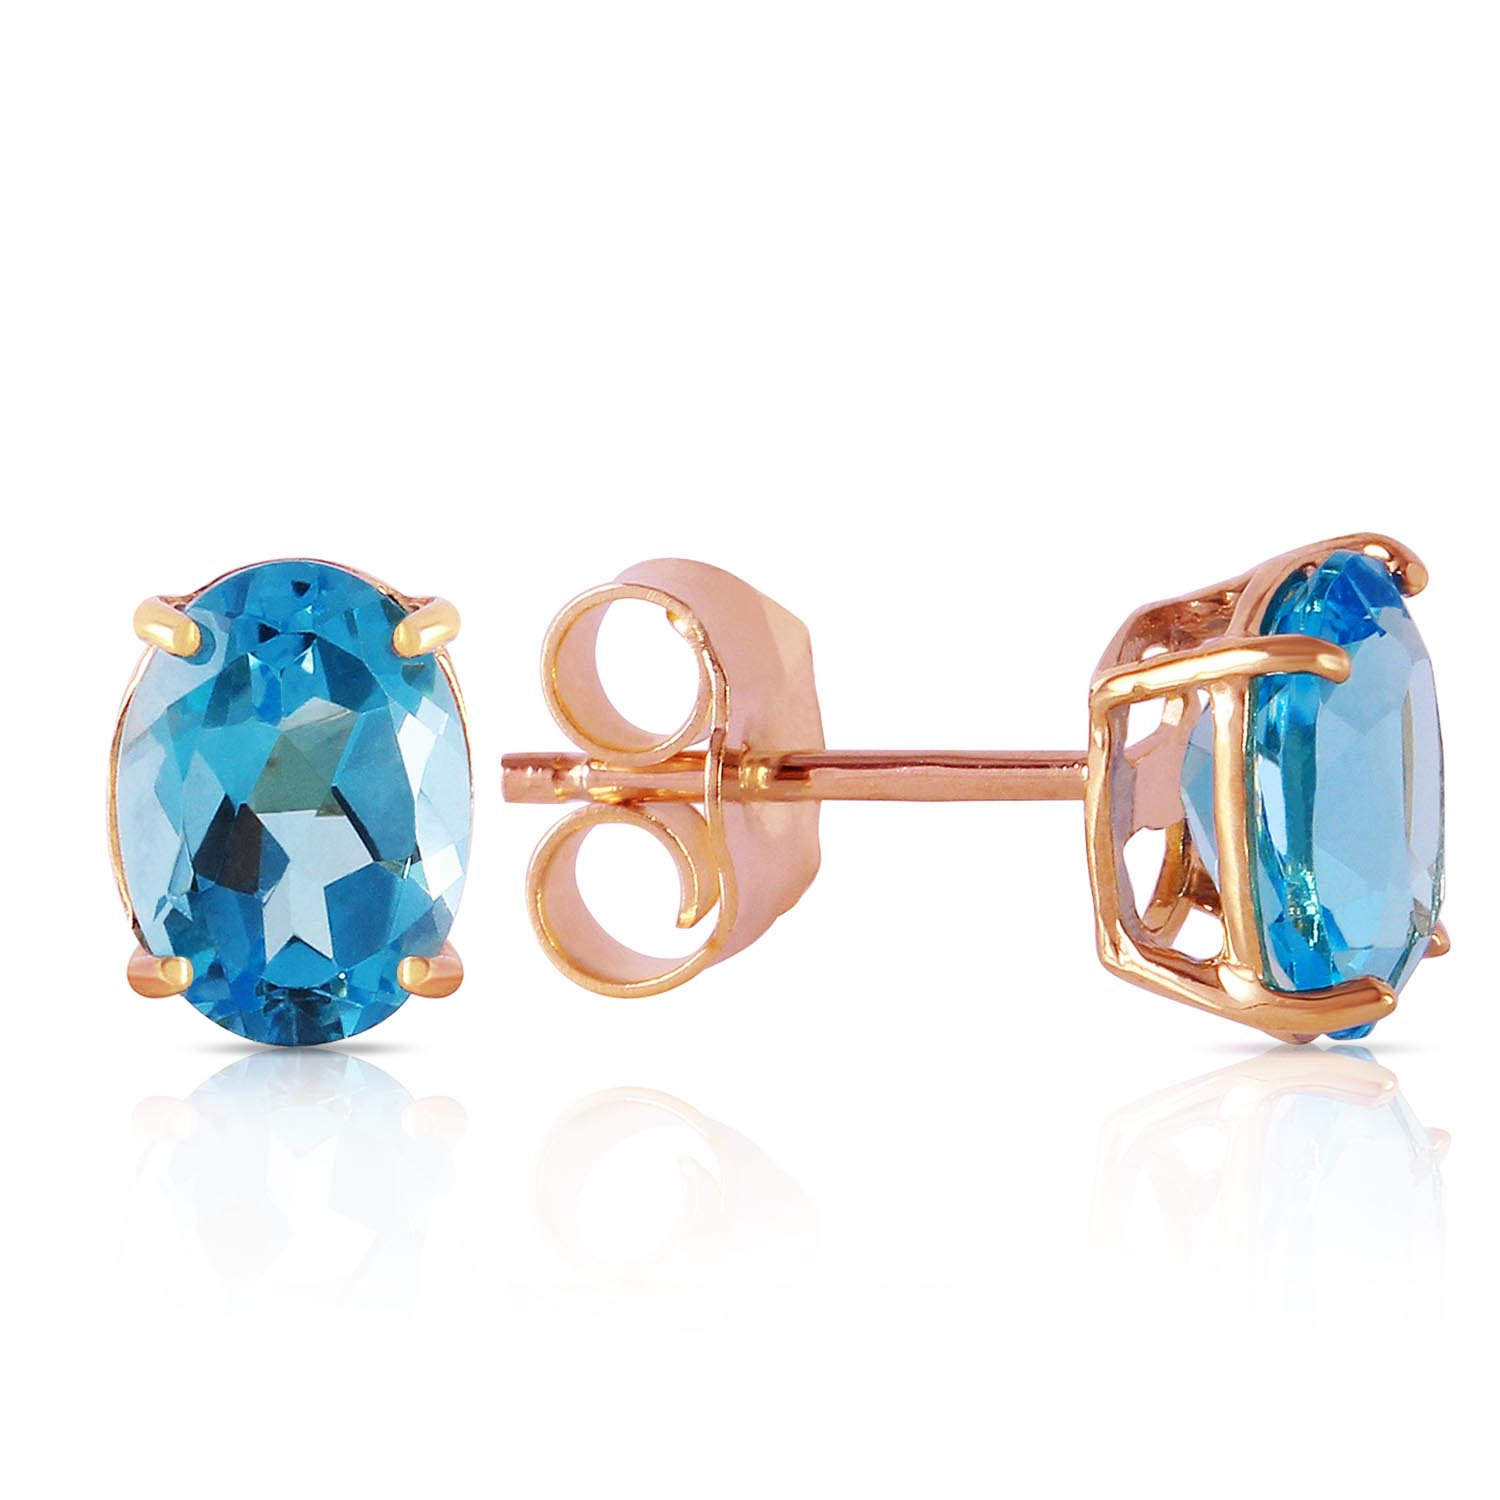 Blue Topaz Stud Earrings 1.8ctw in 9ct Rose Gold